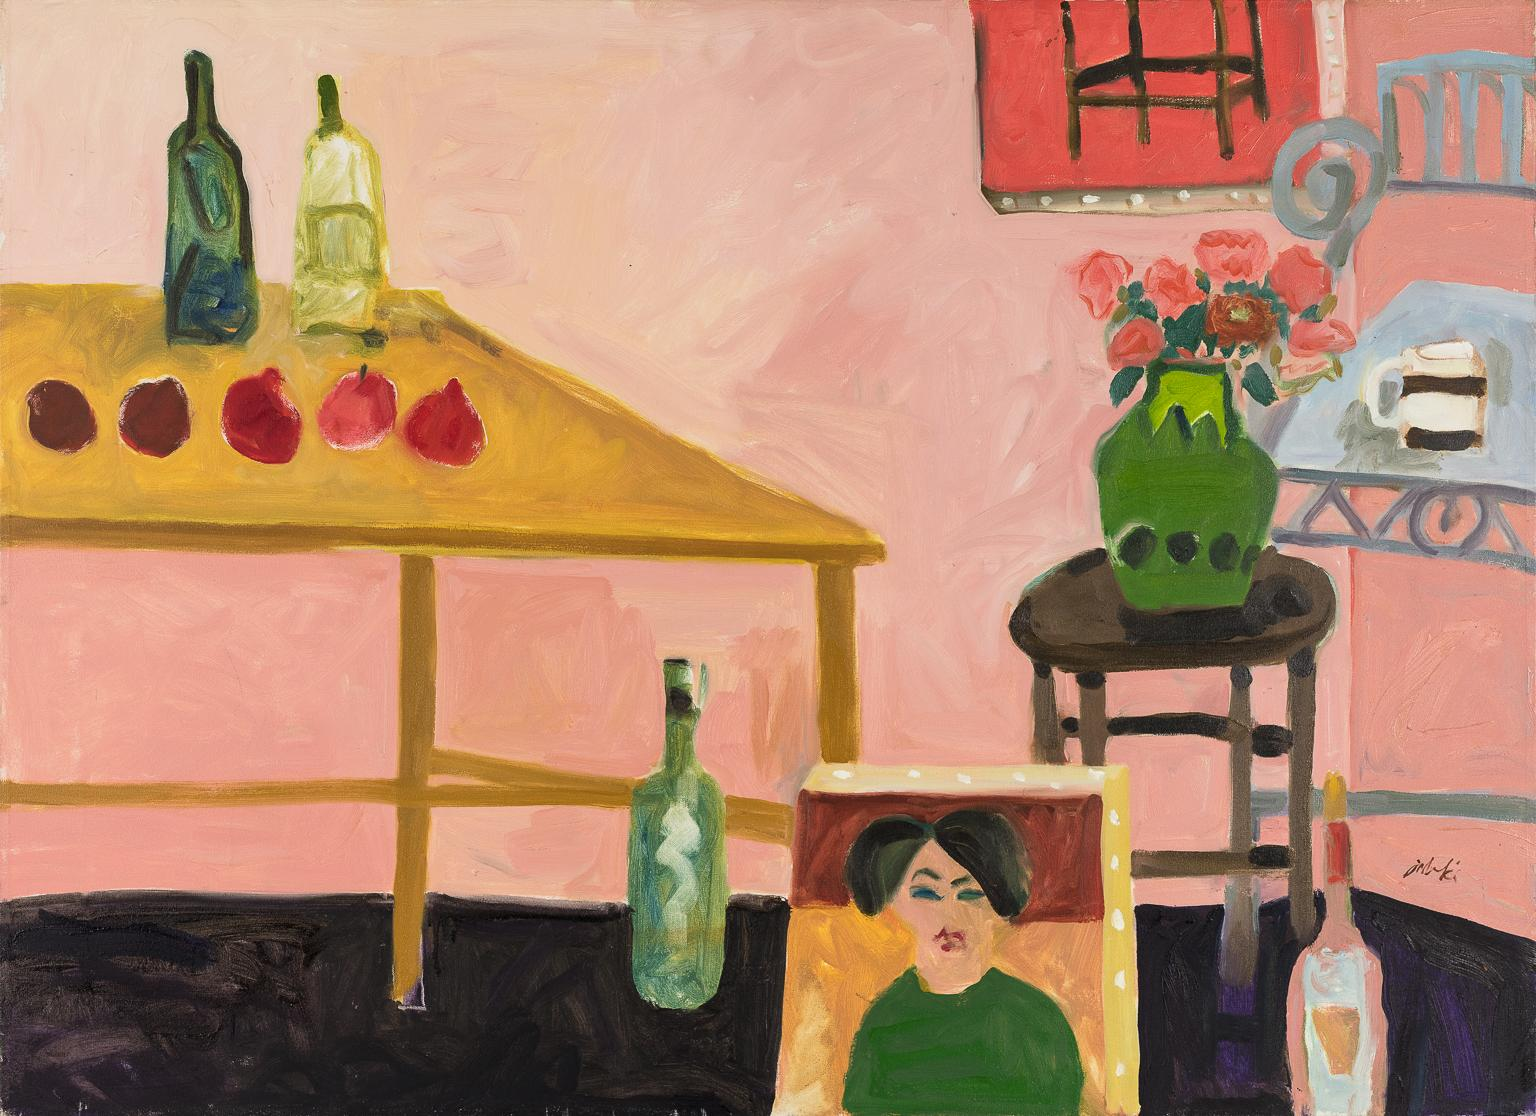 Wine Bottles and Fruit on Table